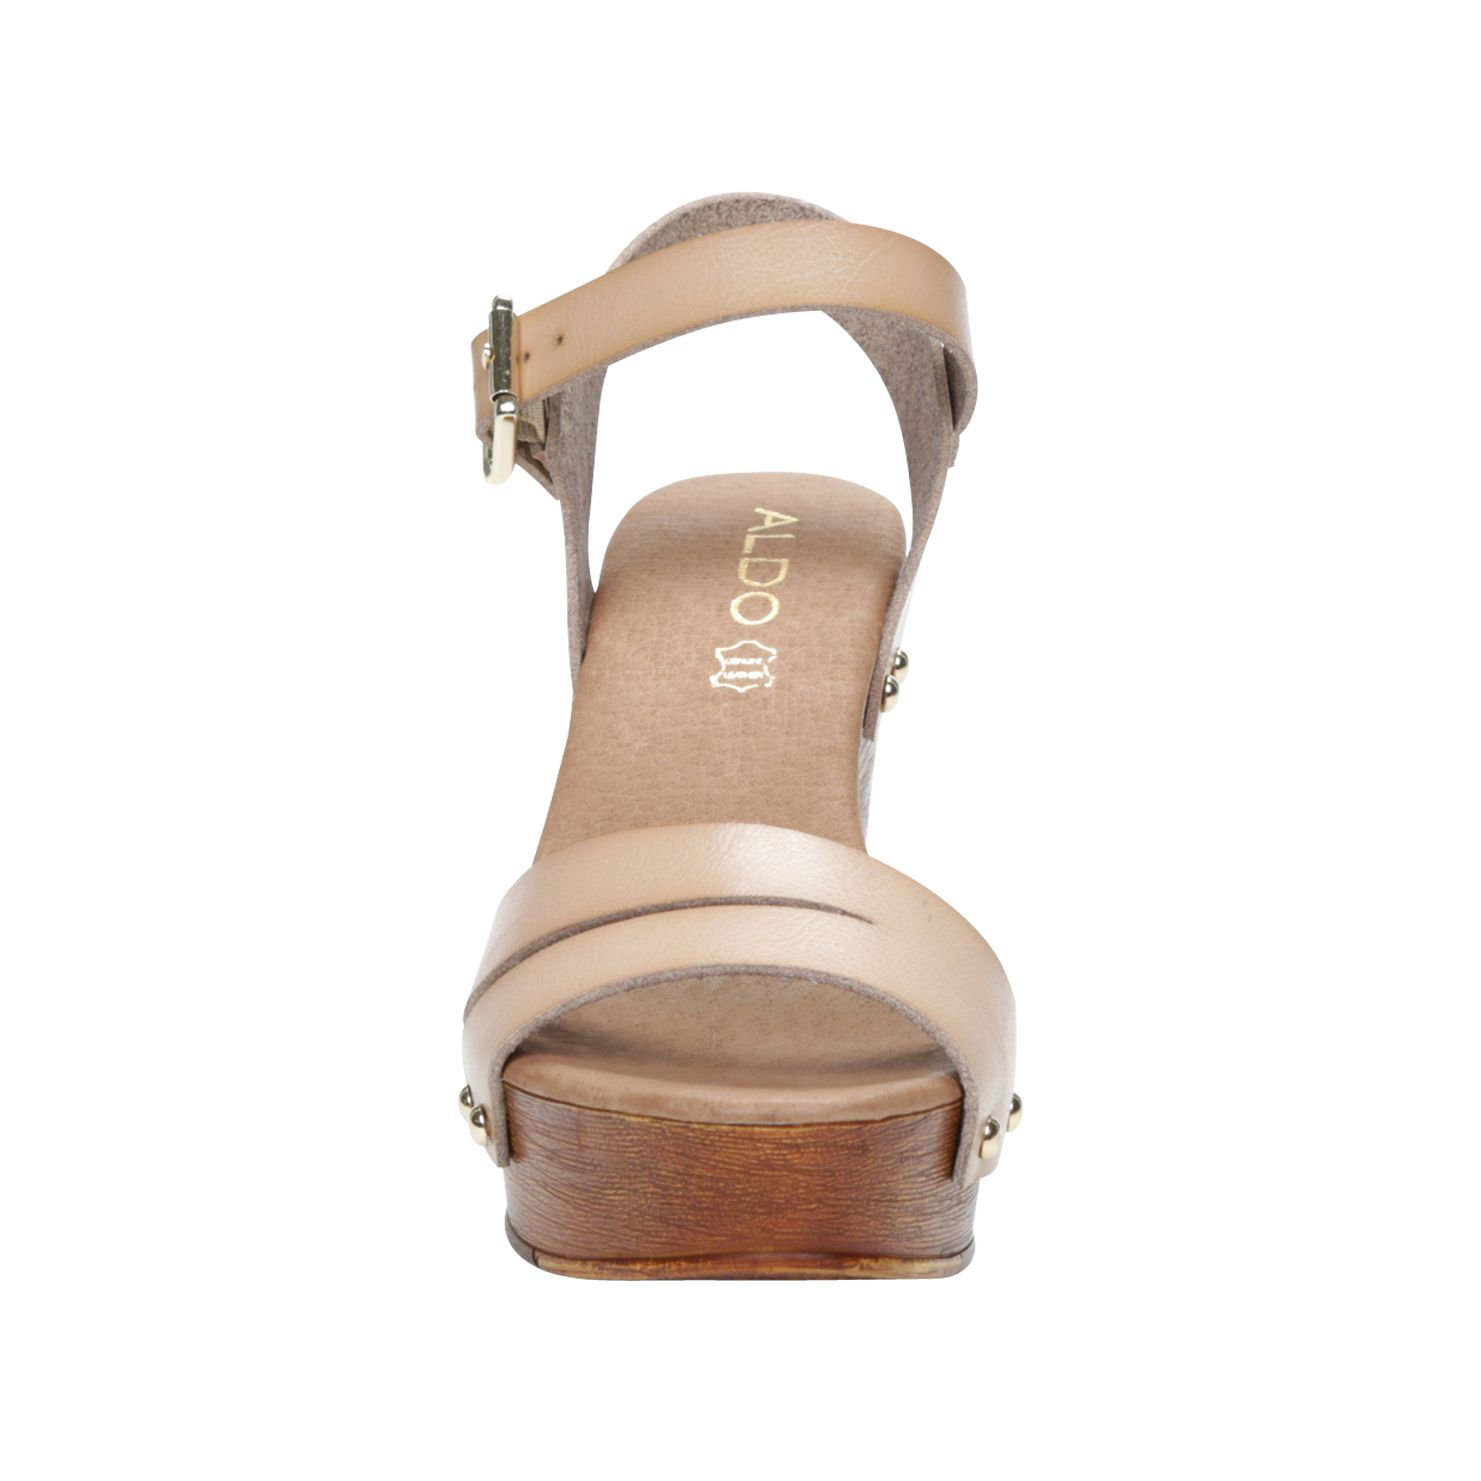 Eowowia wedge strap sandals